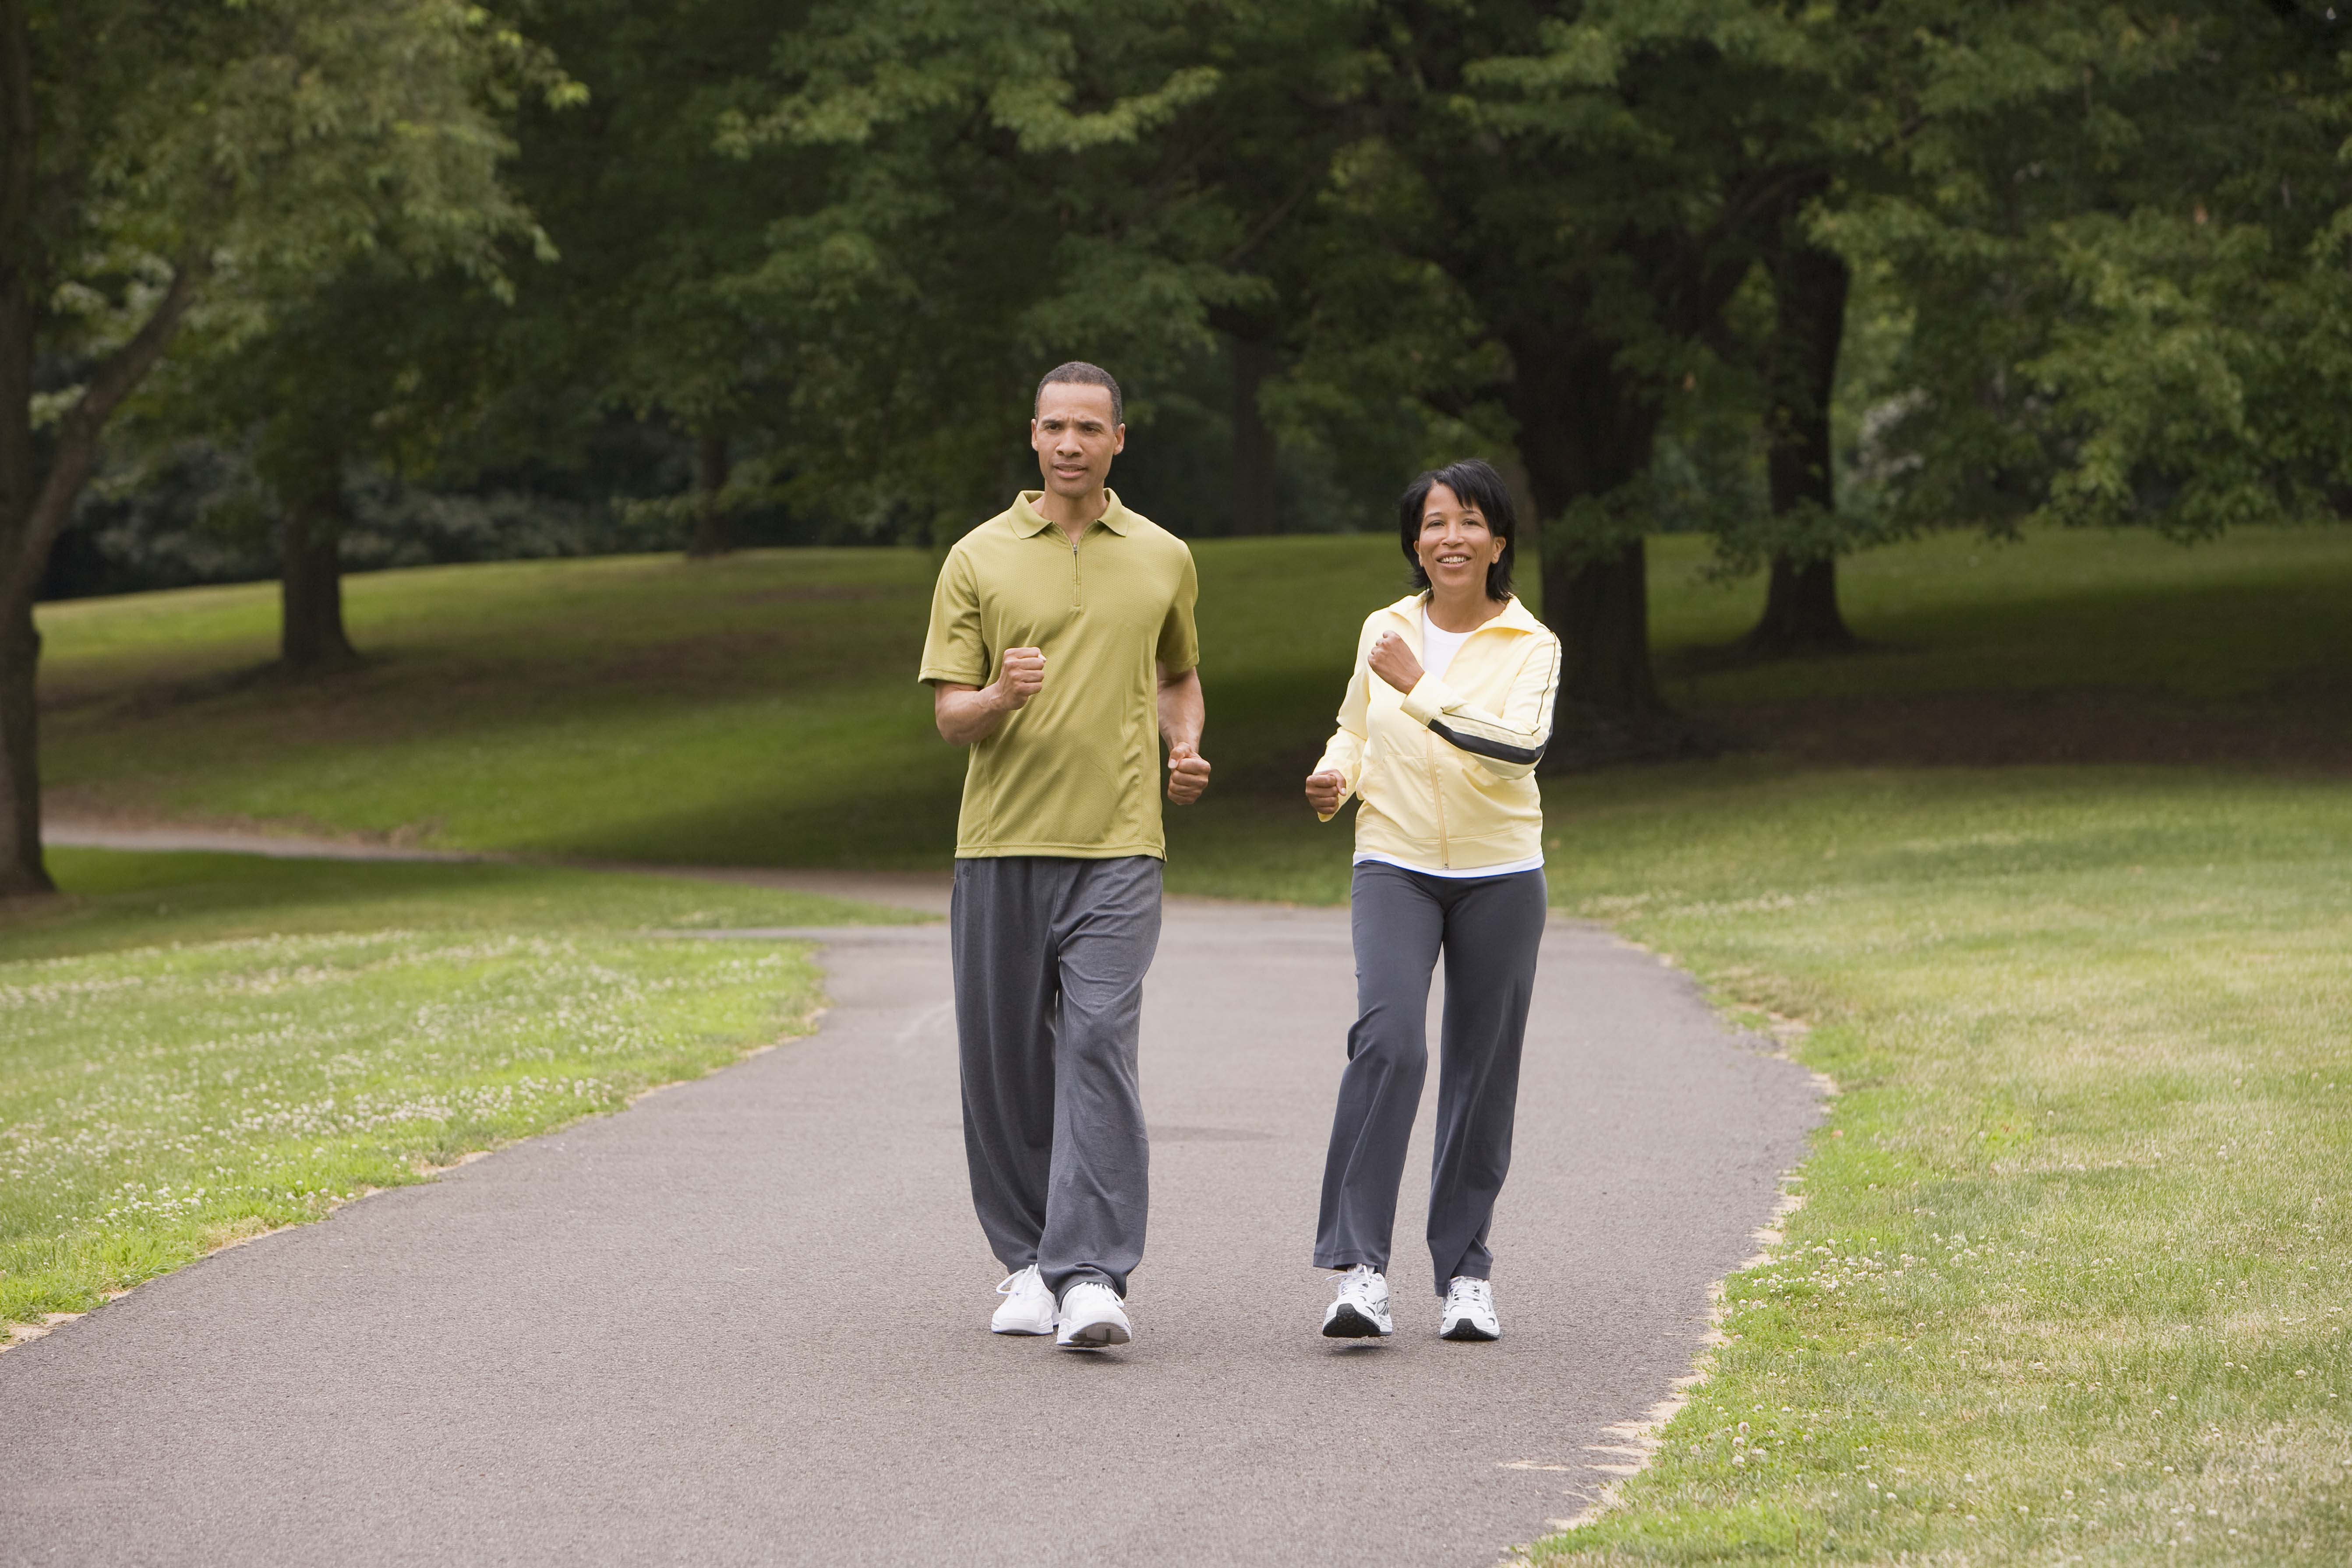 walking pain person increase body syndrome